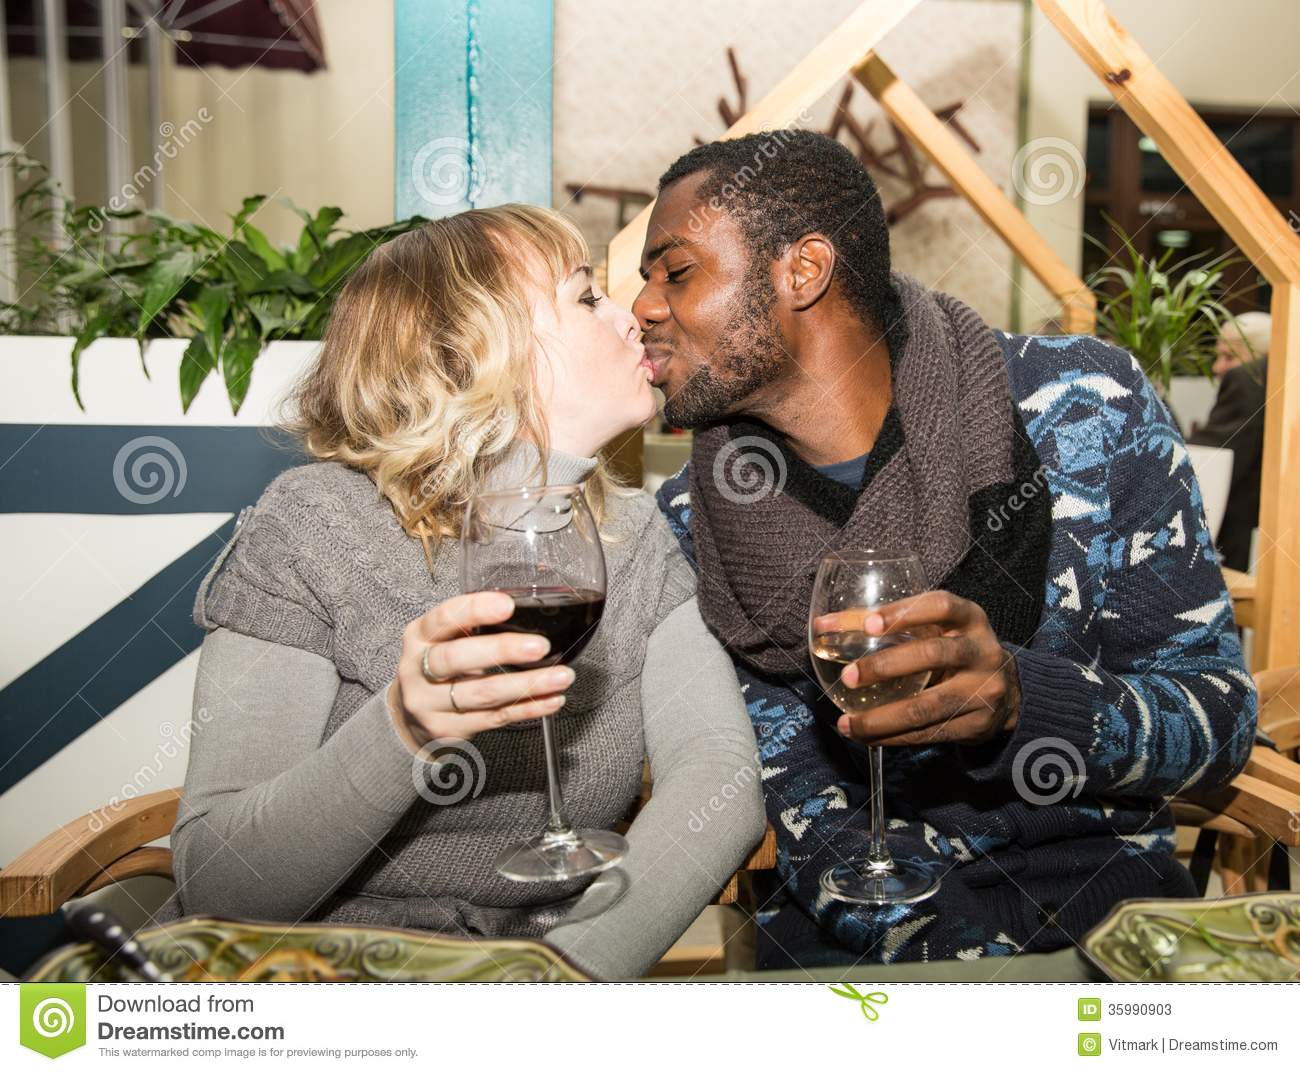 Interracial dating in illinois